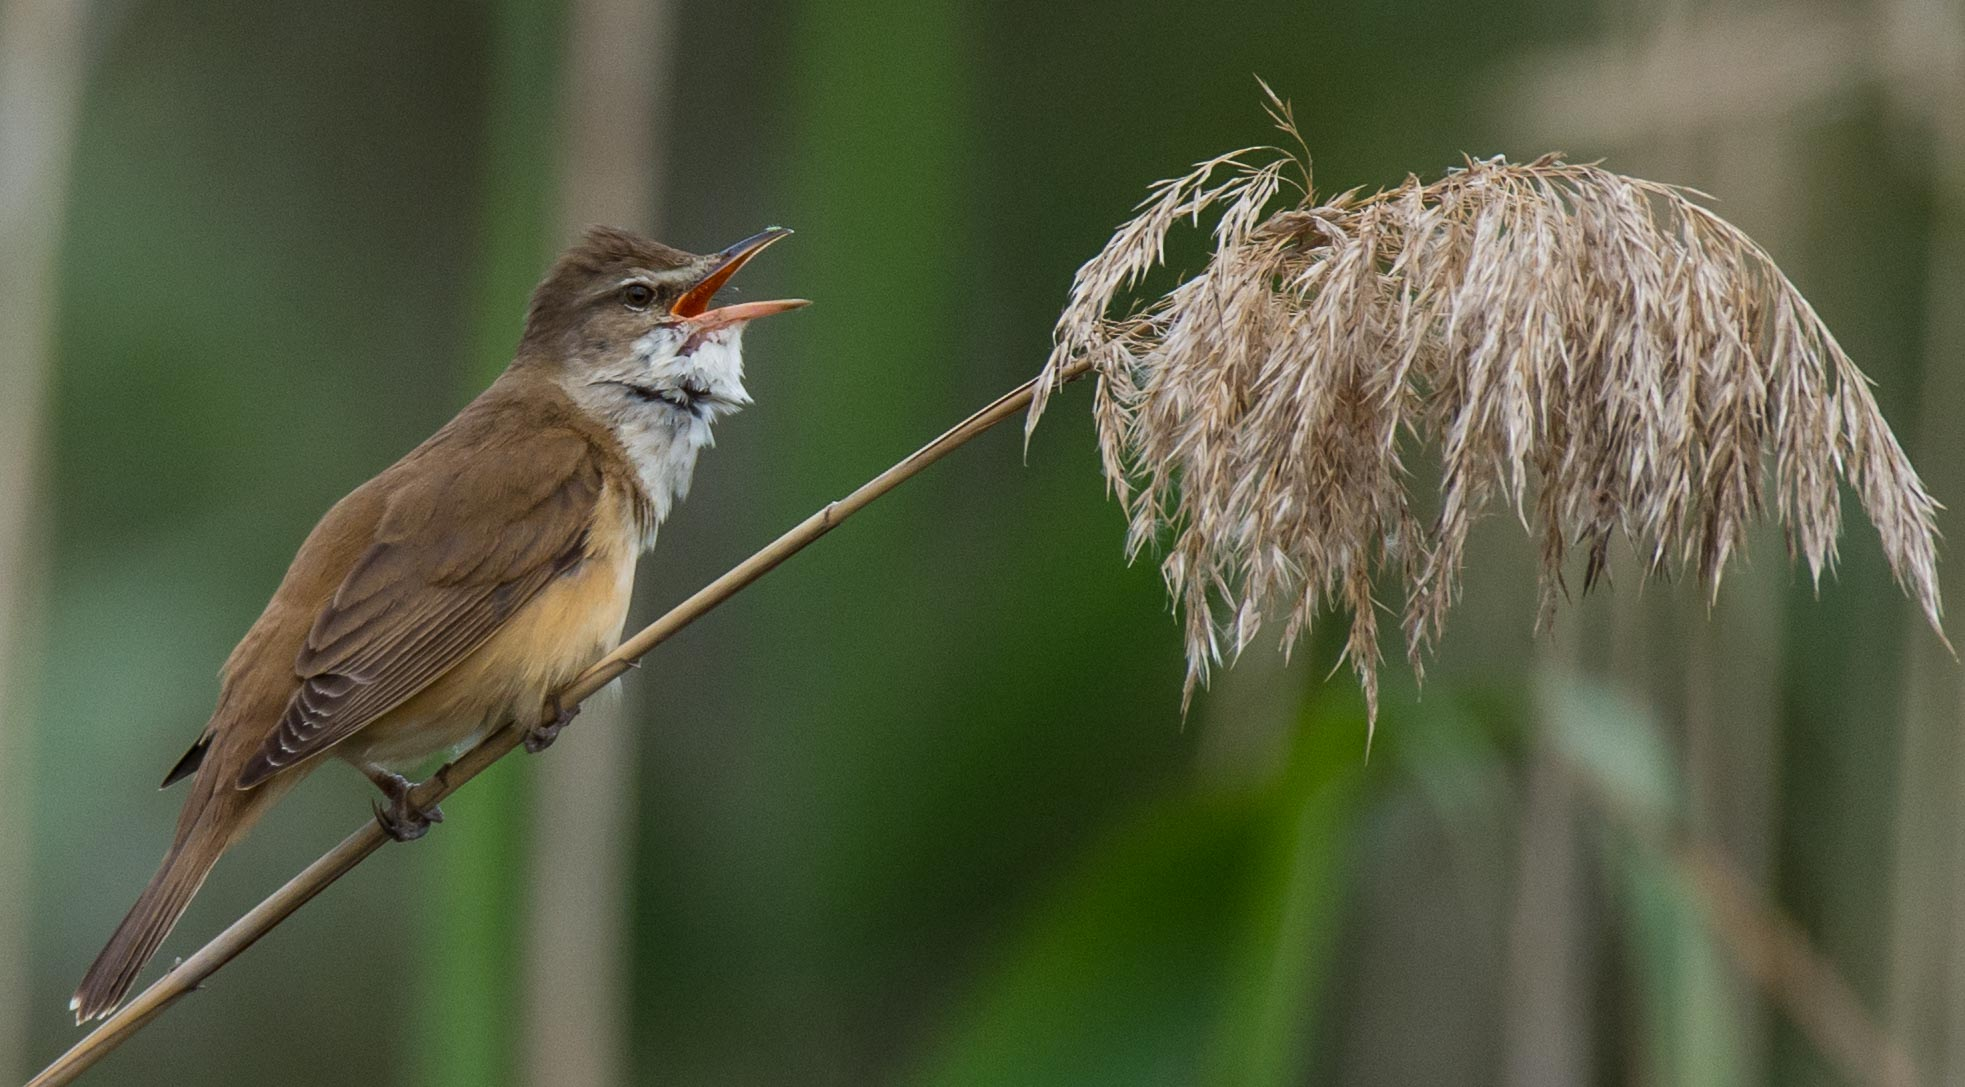 Tracking Great Reed Warbler Migration Birdguides